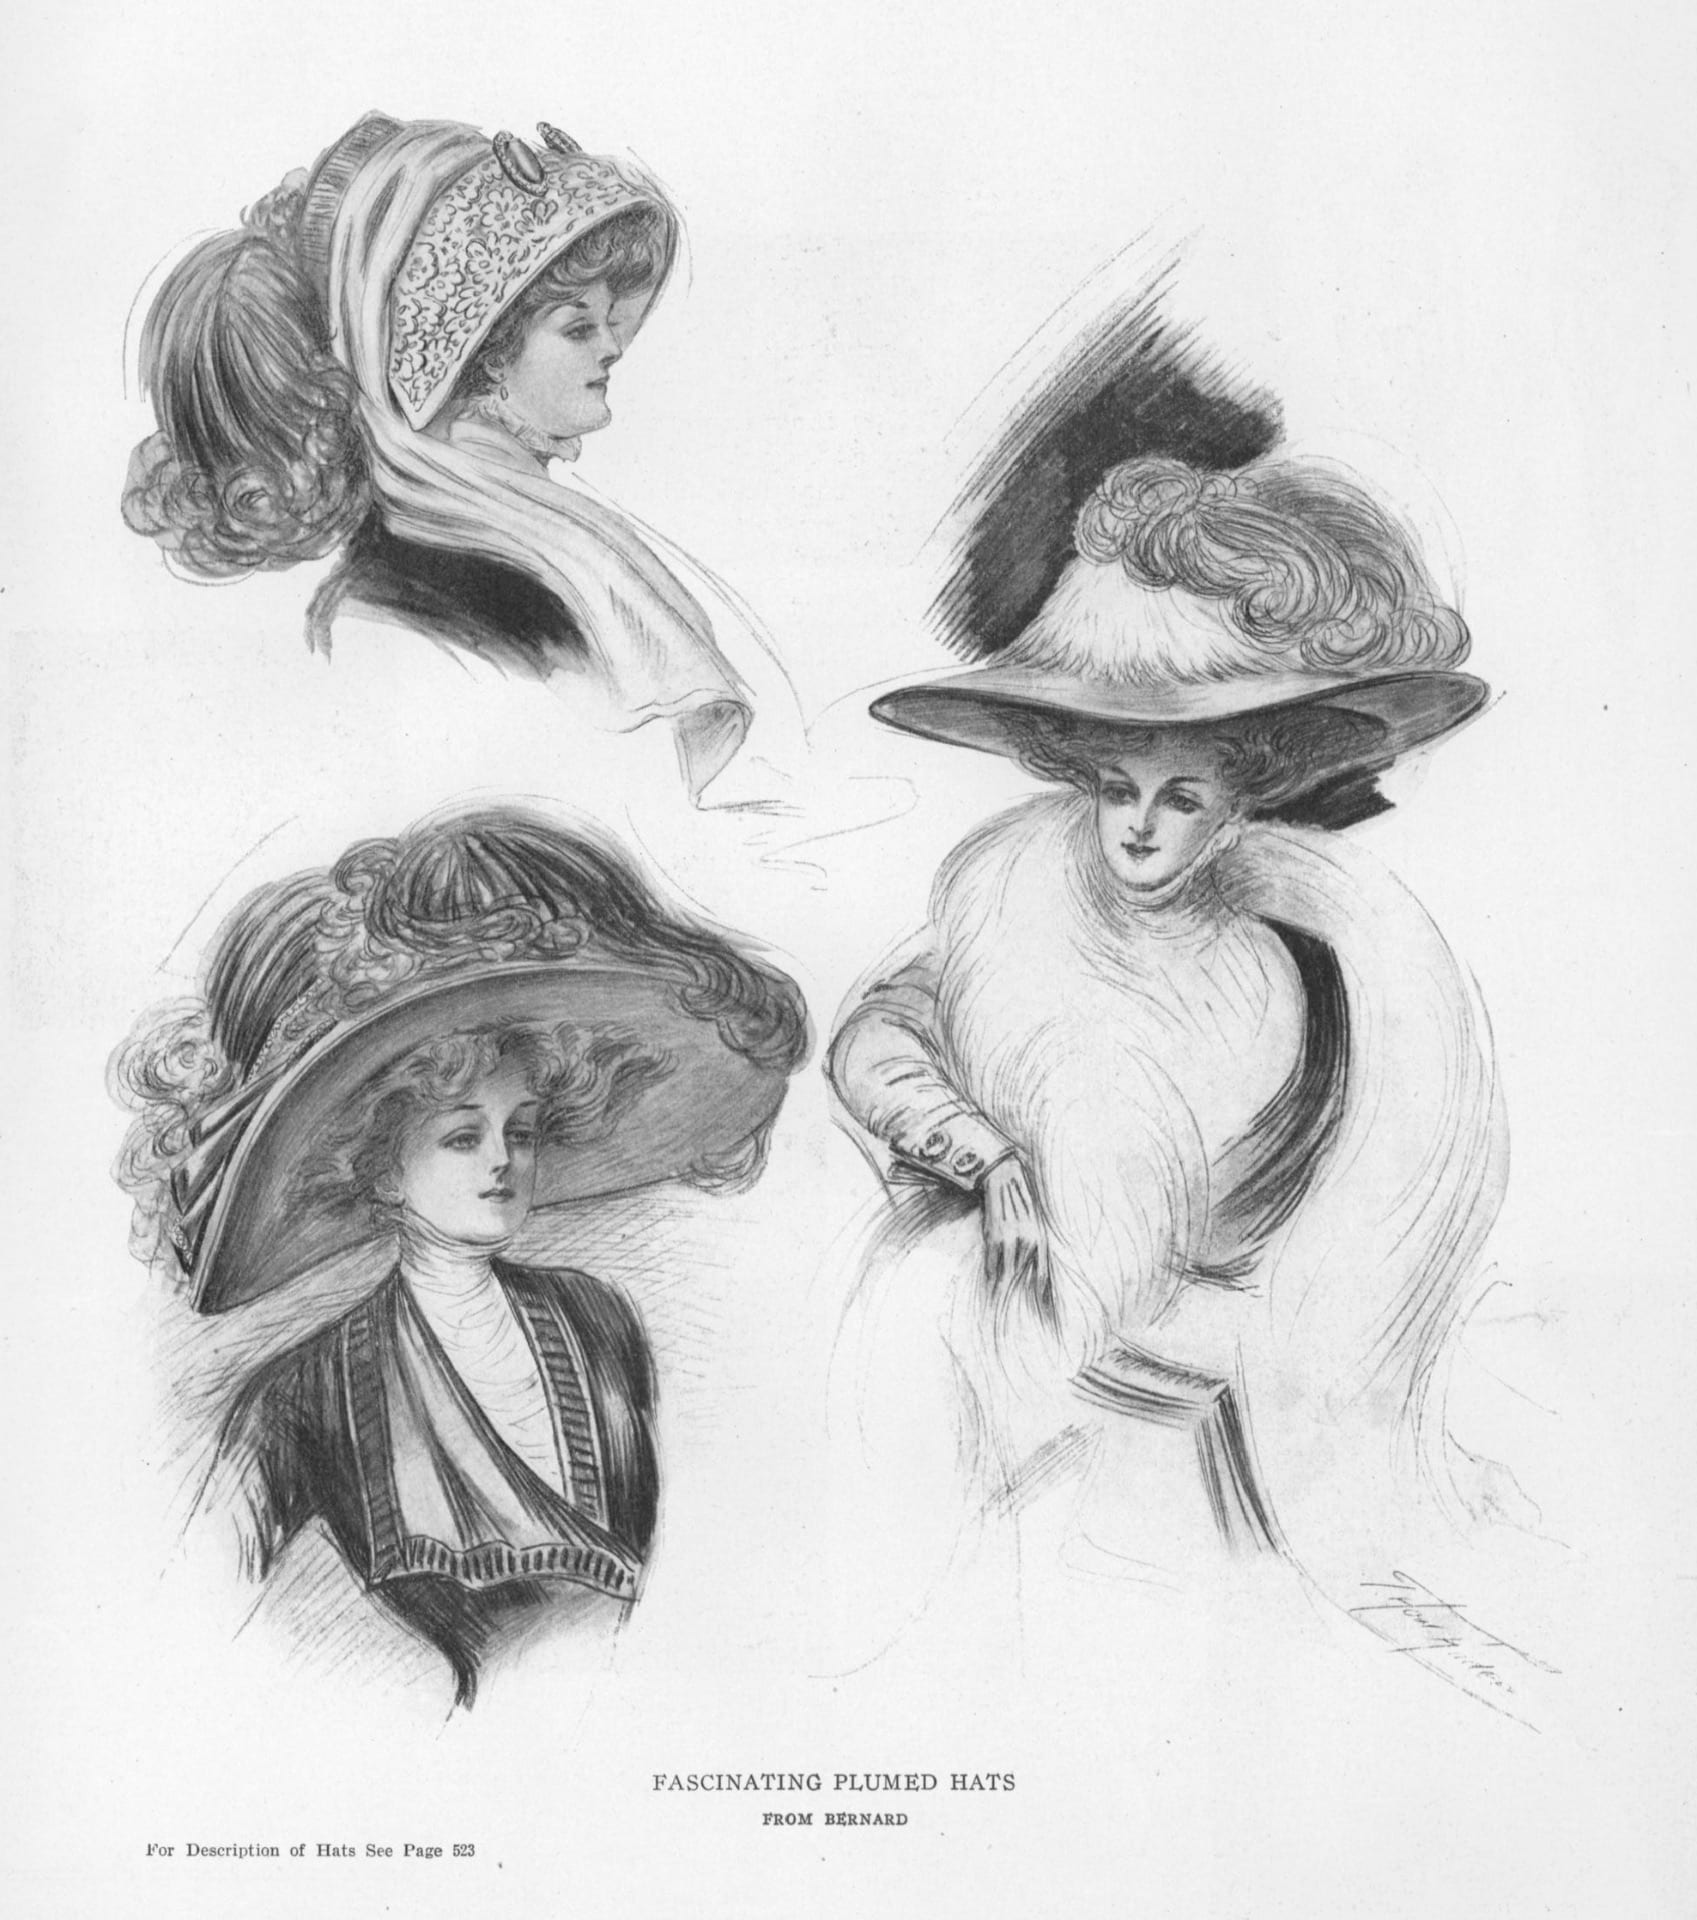 Advertisement for plumed hats by Bernard, October 1908. Published in Vogue, New York, Vol. 32, Issue 15 (Oct 8, 1908): 522.